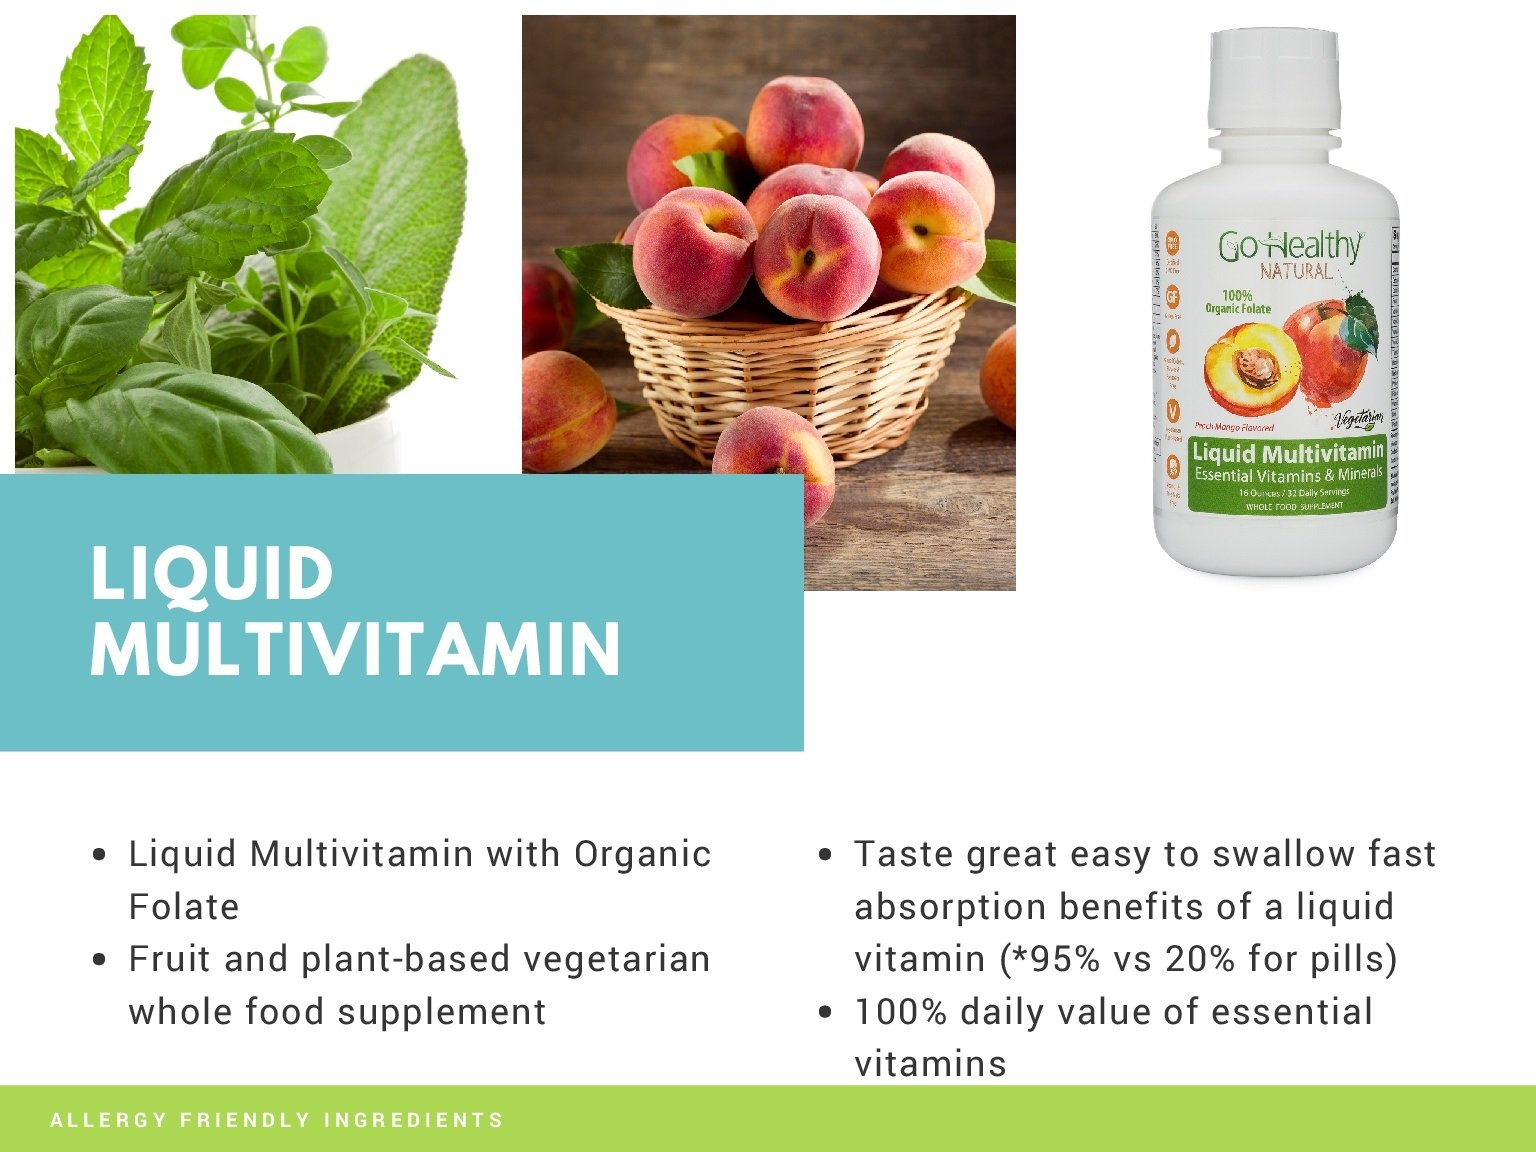 Want a Fruit-Based Kids Gummy Multivitamin?